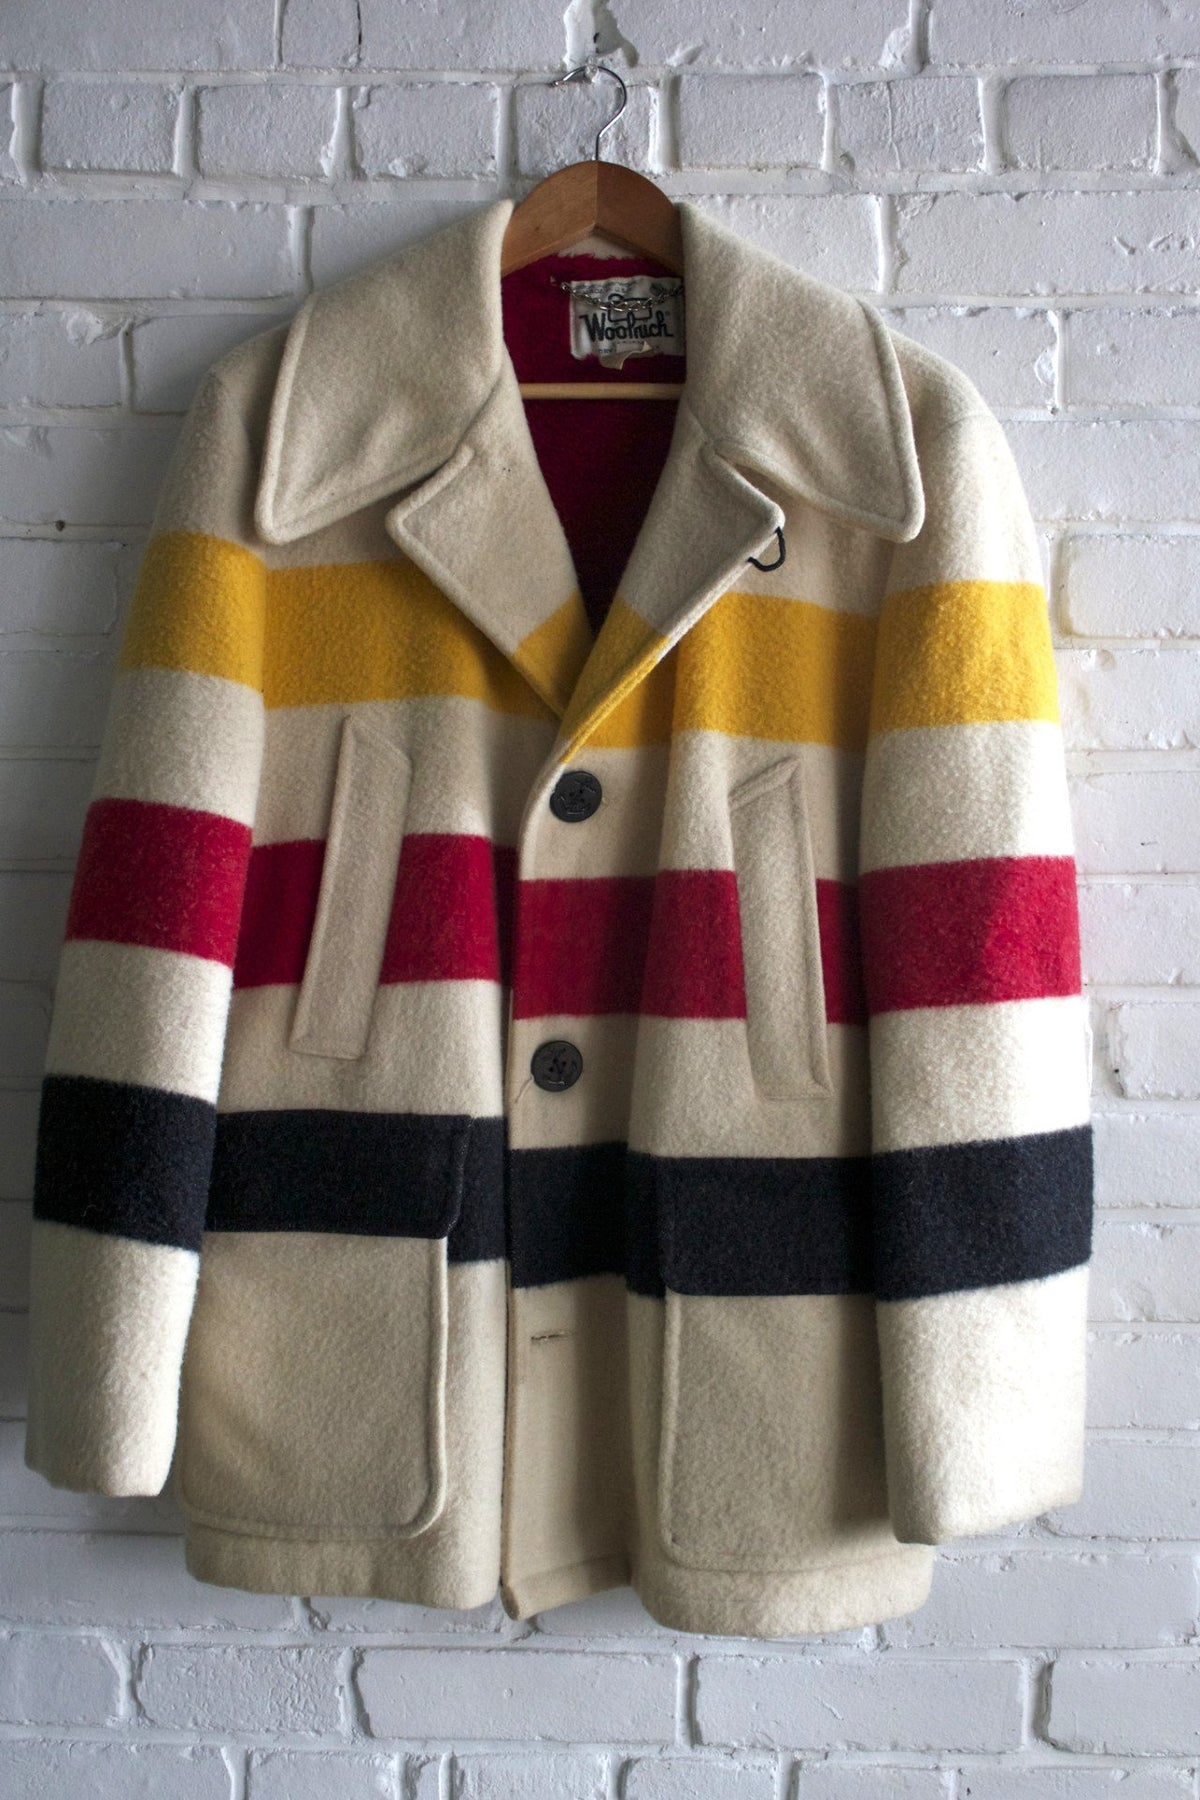 Vintage Woolrich Peacoat - Diamonds & Rust